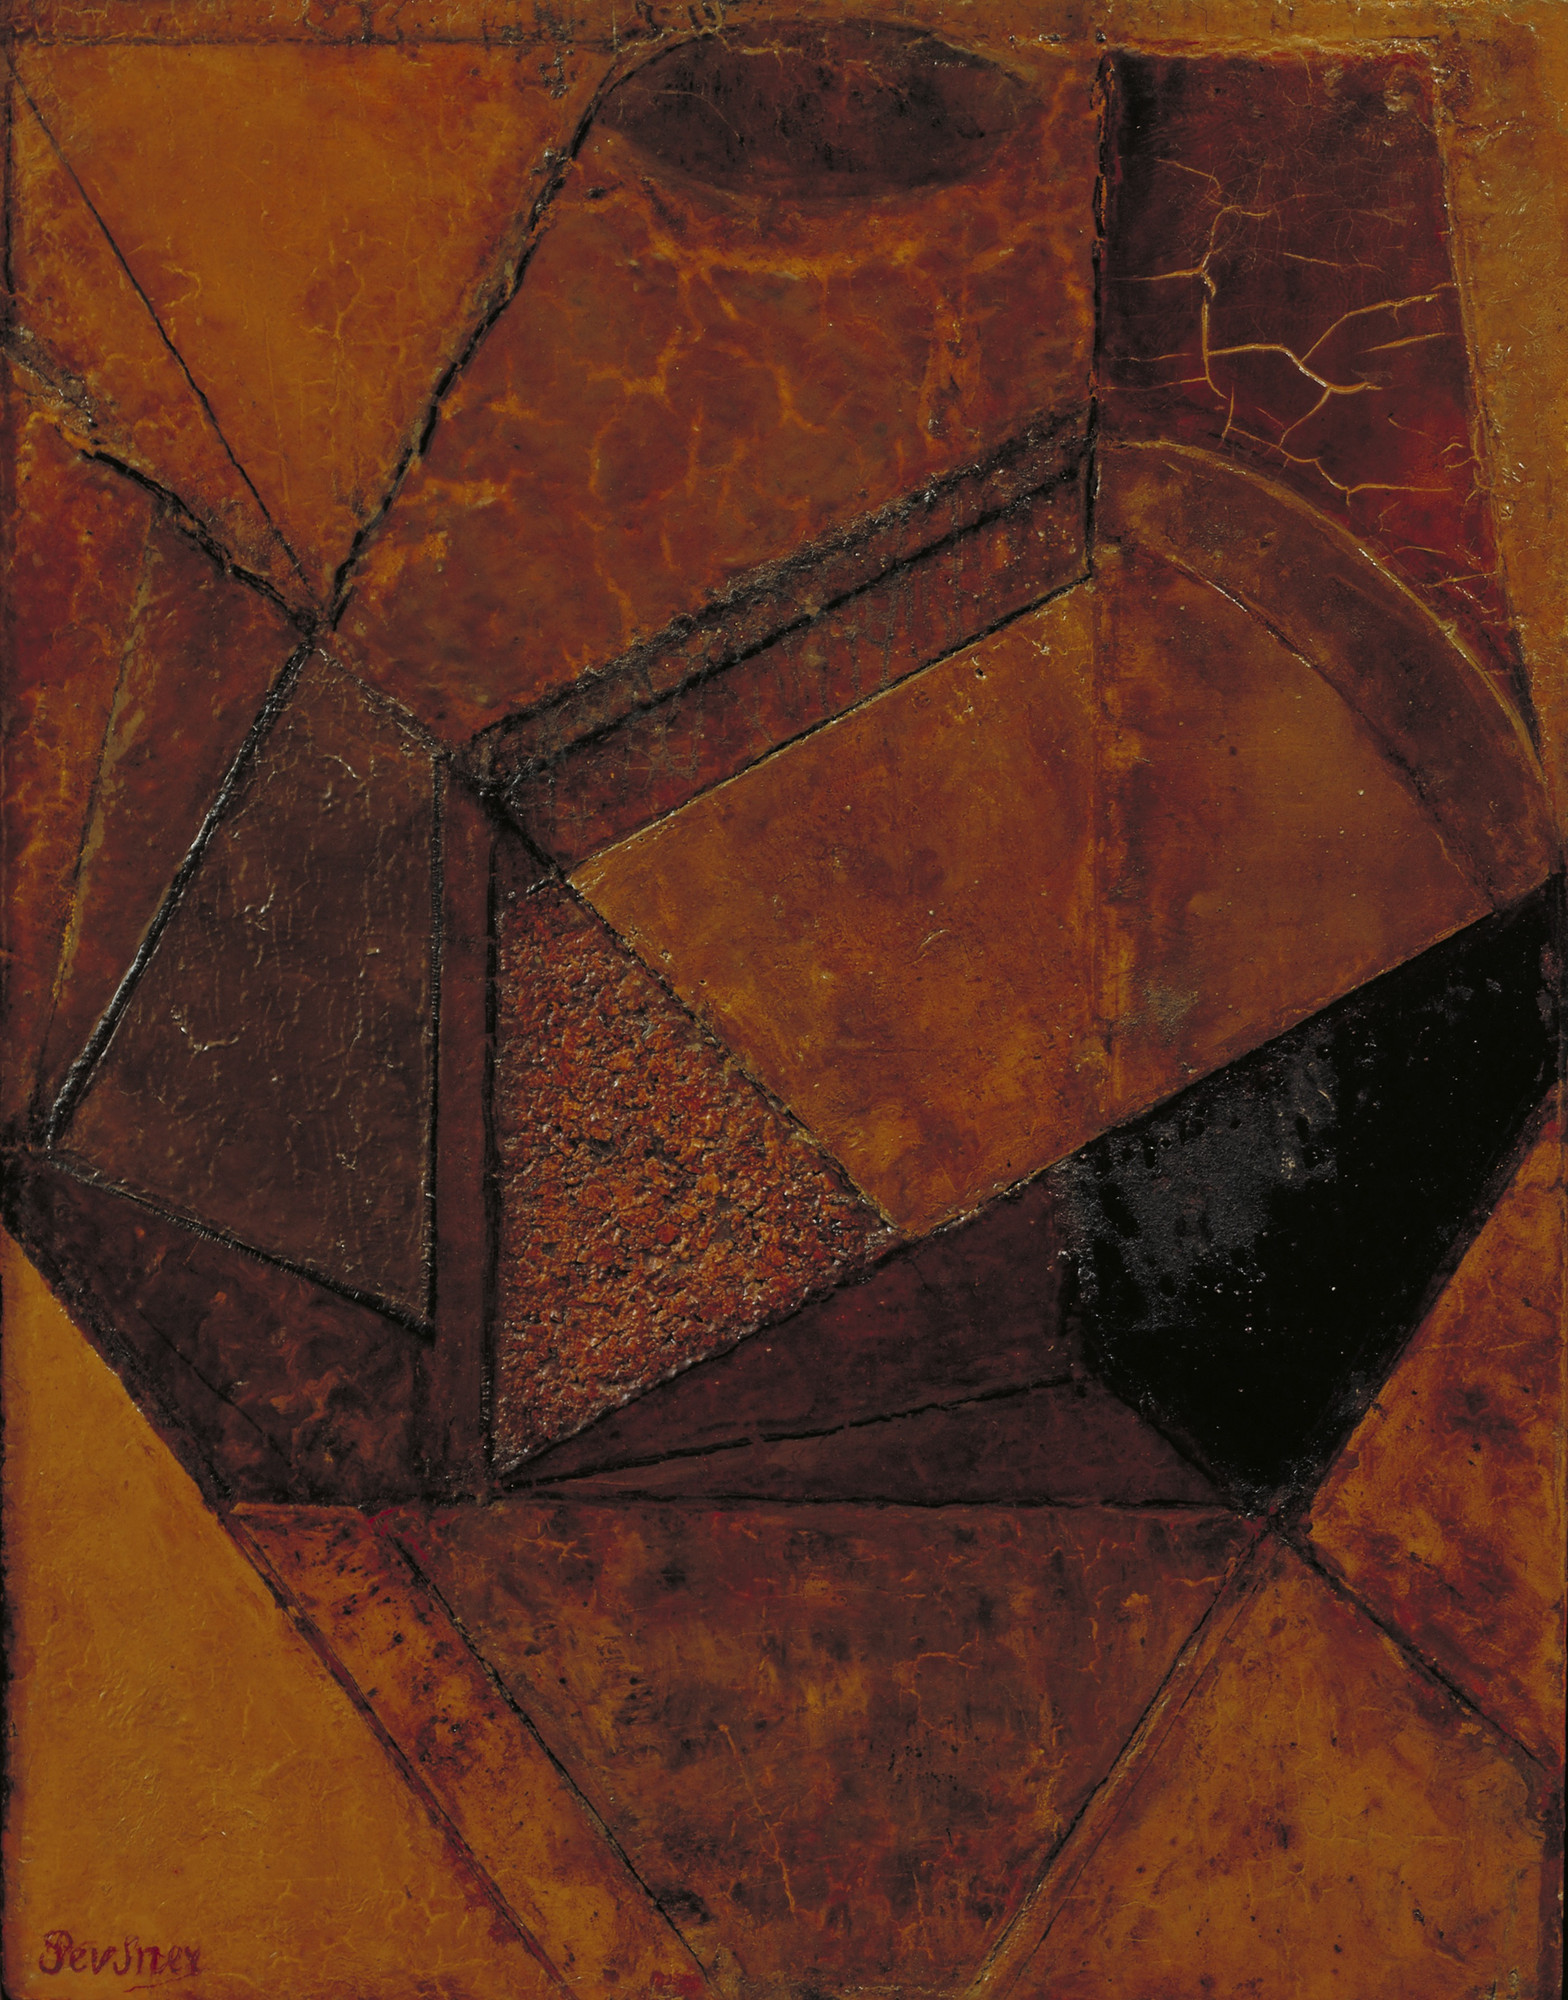 Antoine Pevsner. Abstract Forms. 1913? (1923?)